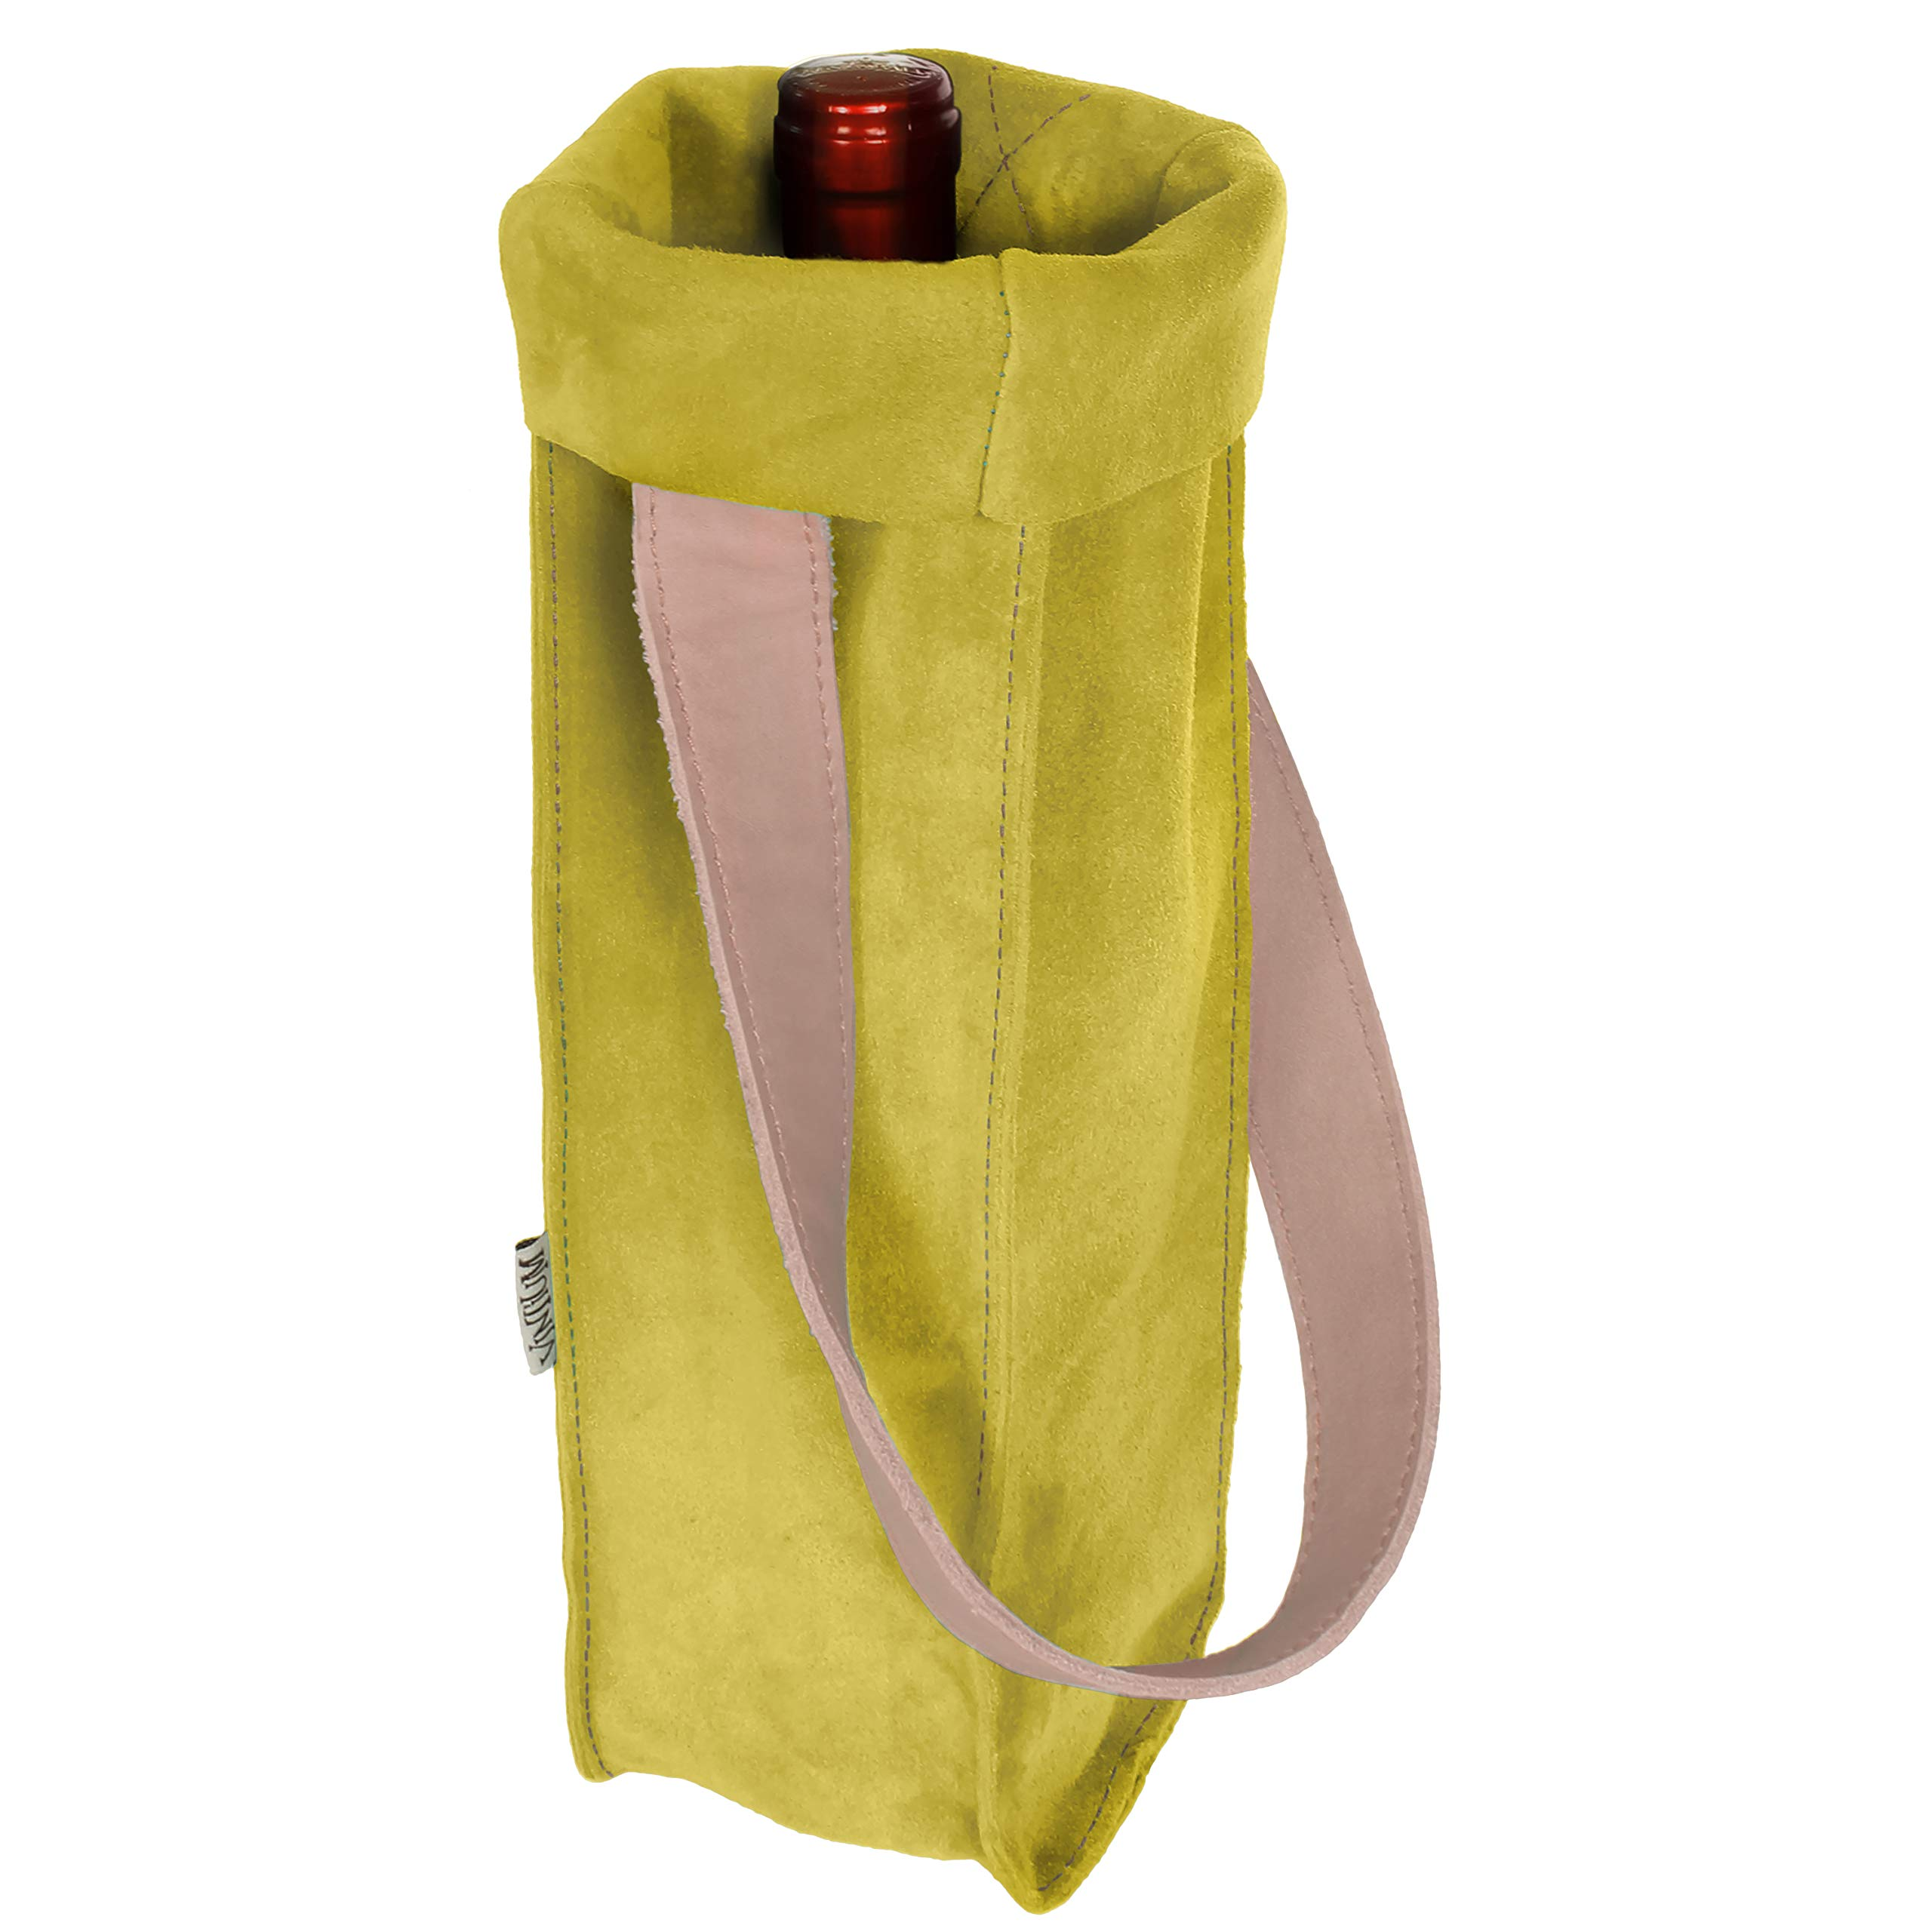 Vintium Genuine Suede Leather Wine Carrier Tote Bag Excellent Quality Fits 1 Bottle Perfect Gift for the Wine Enthusiast - Lemon